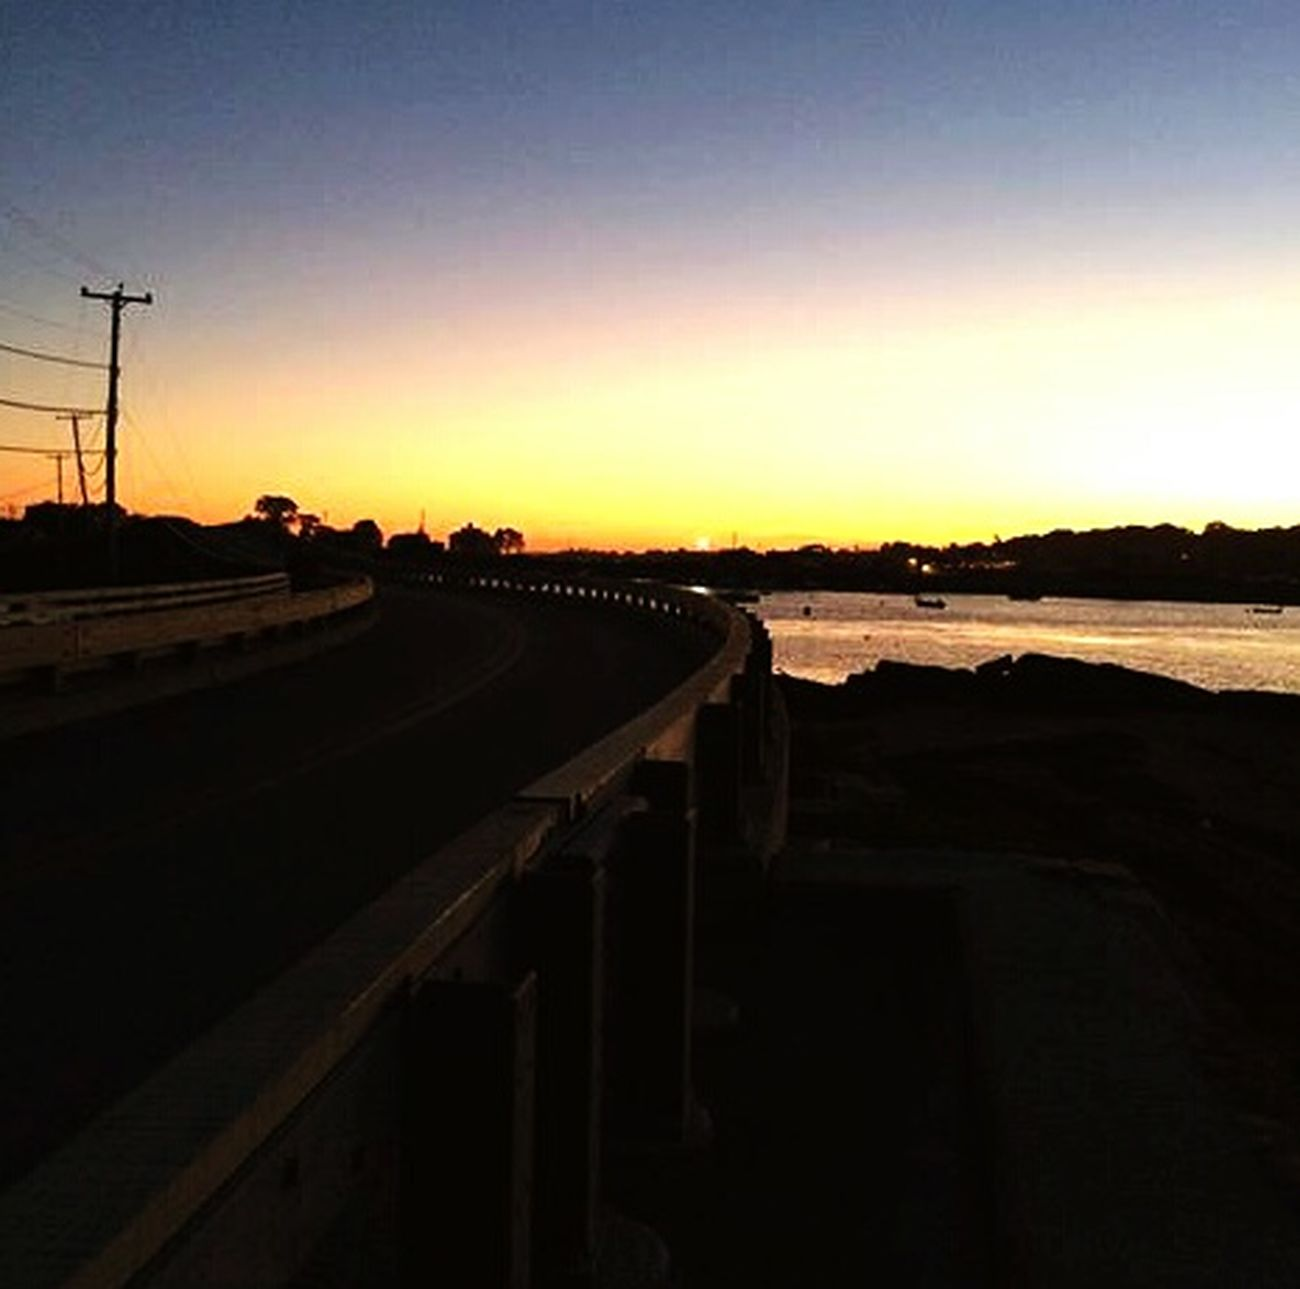 Baileys Island Cobblestone Bridge Sunset Ocean Summer 2015 September Beautiful Carnivalmo0nscorperated